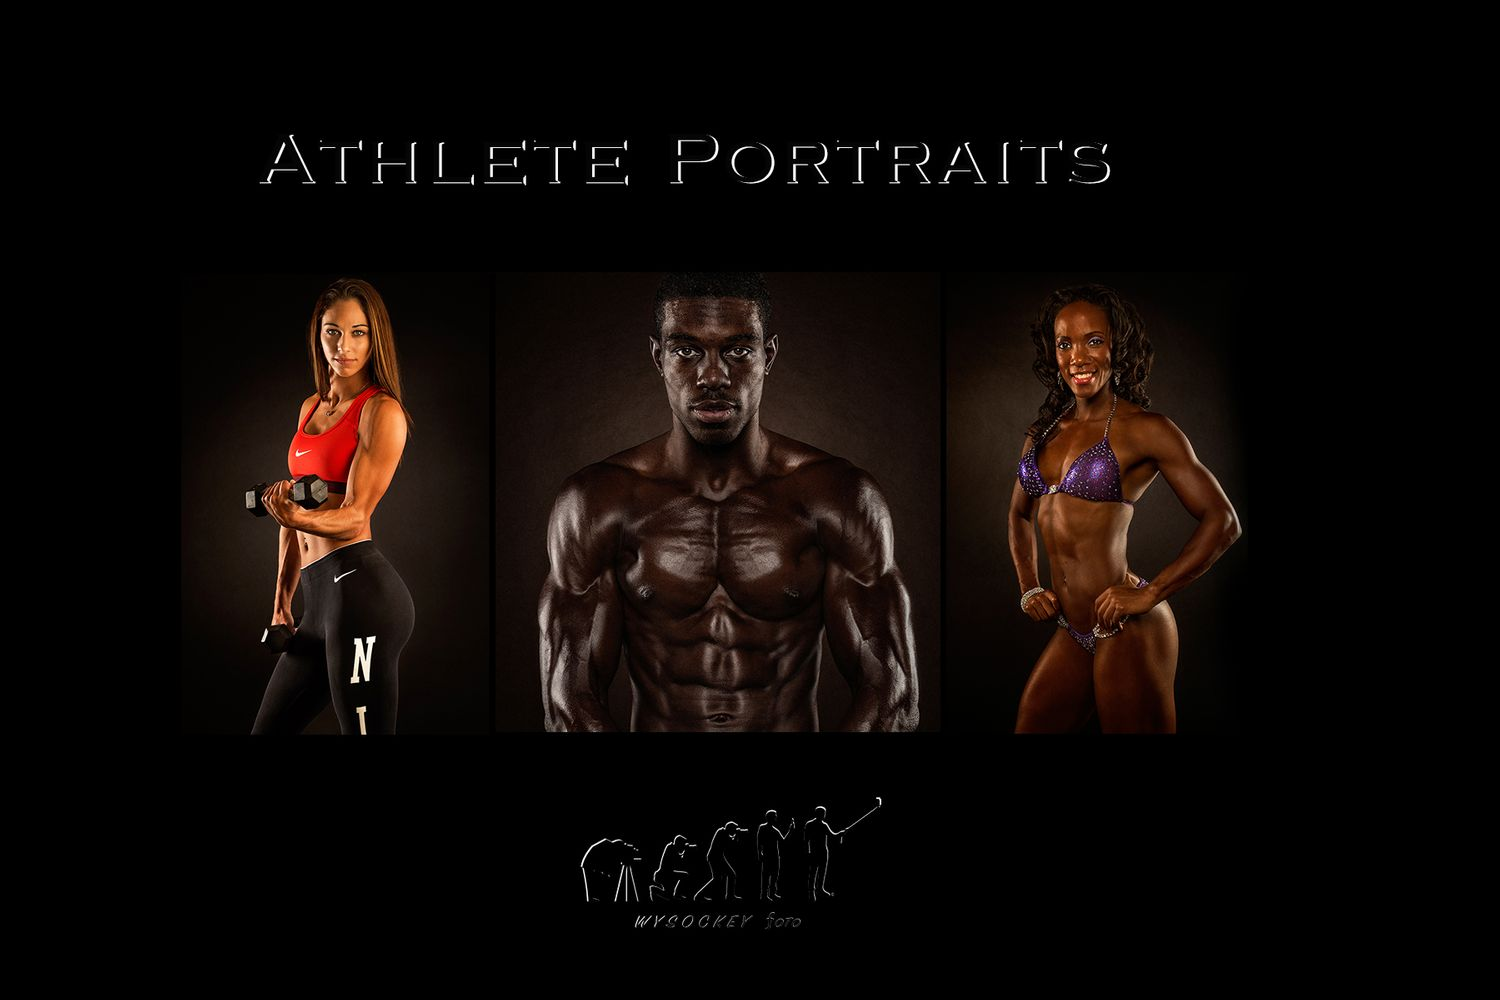 athlete portraits intro.jpg